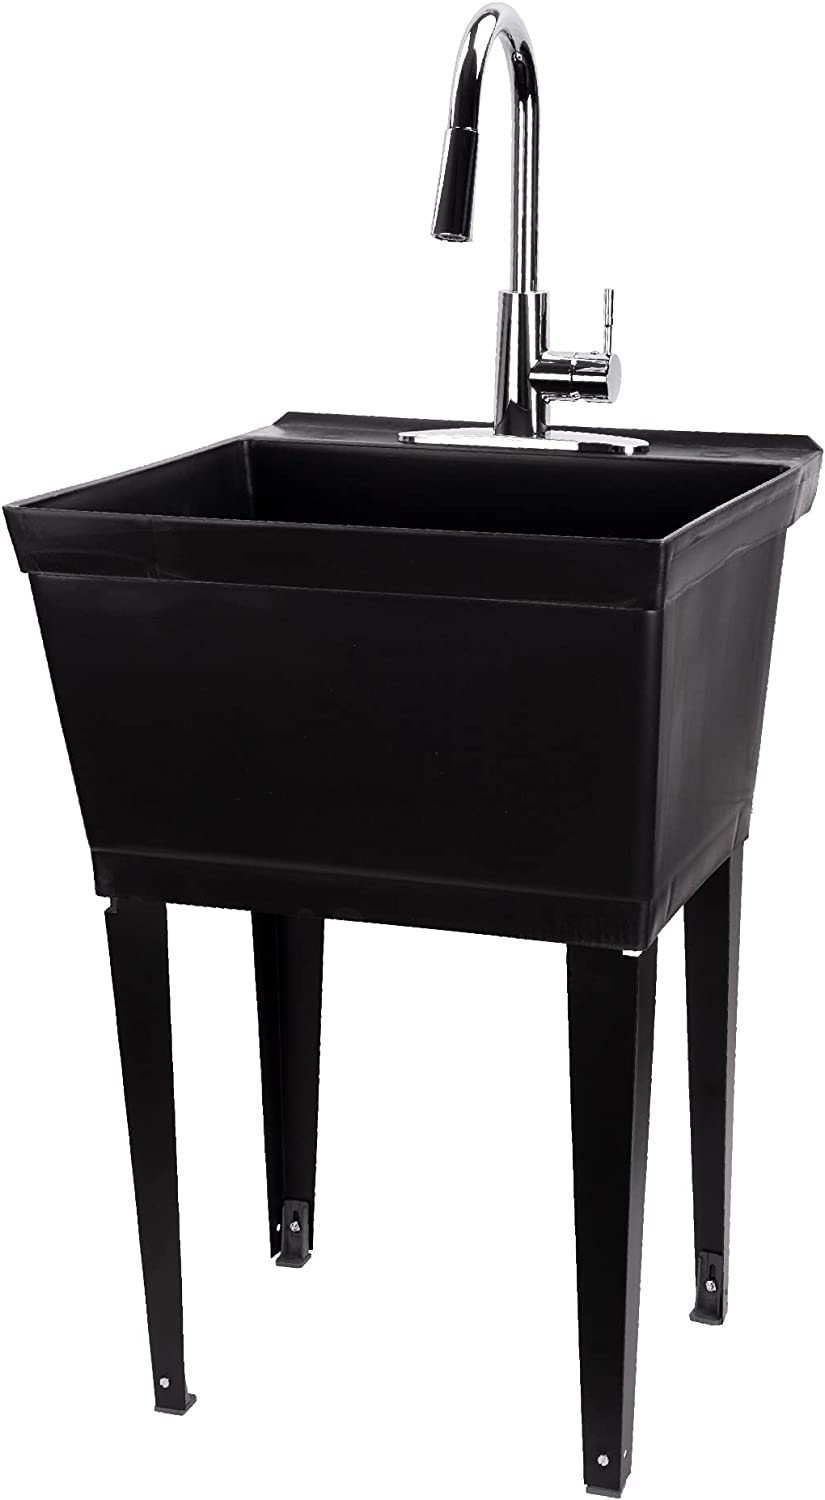 Stainless Coil High-Arc Pull-Down Sprayer Faucet Soap Dispenser and Spacious Cabinet by JS Jackson Supplies Tehila Utility Sink Black Vanity